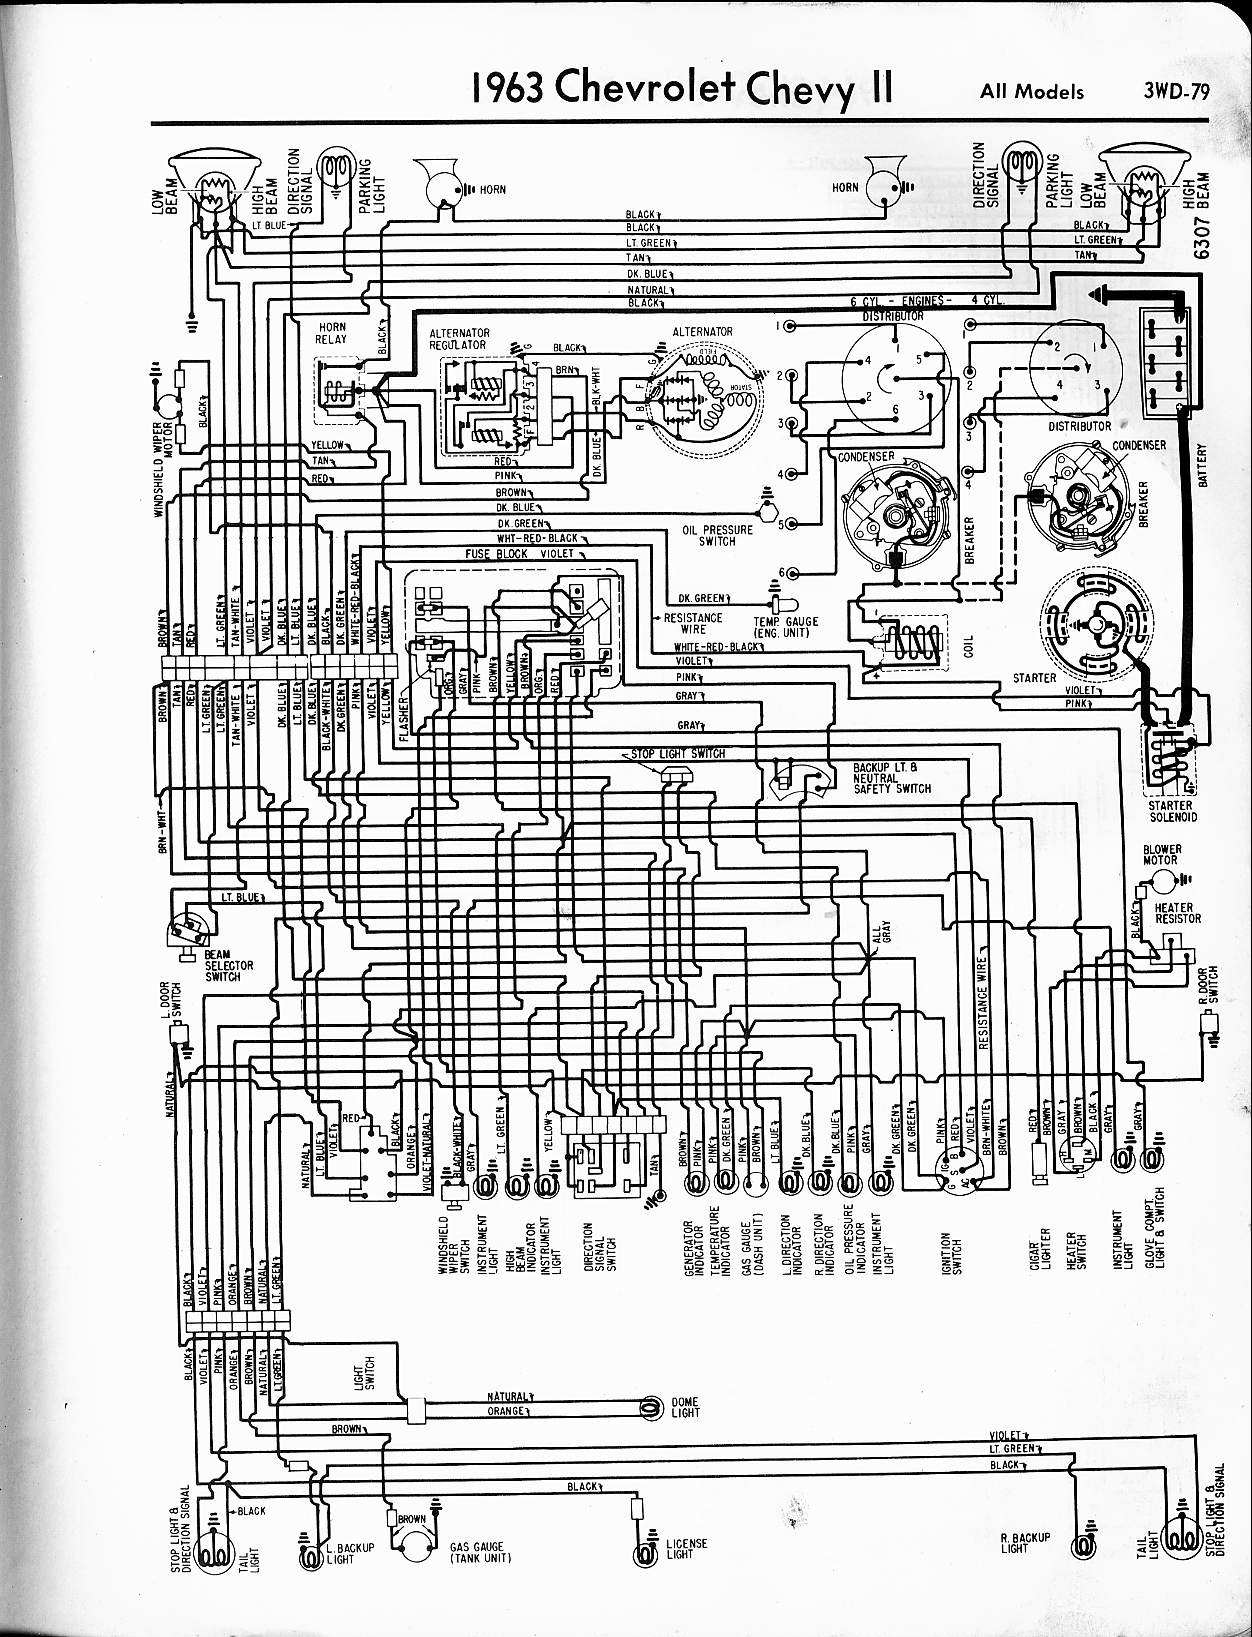 MWireChev63_3WD 079 57 65 chevy wiring diagrams 1963 vw wiring diagram at alyssarenee.co